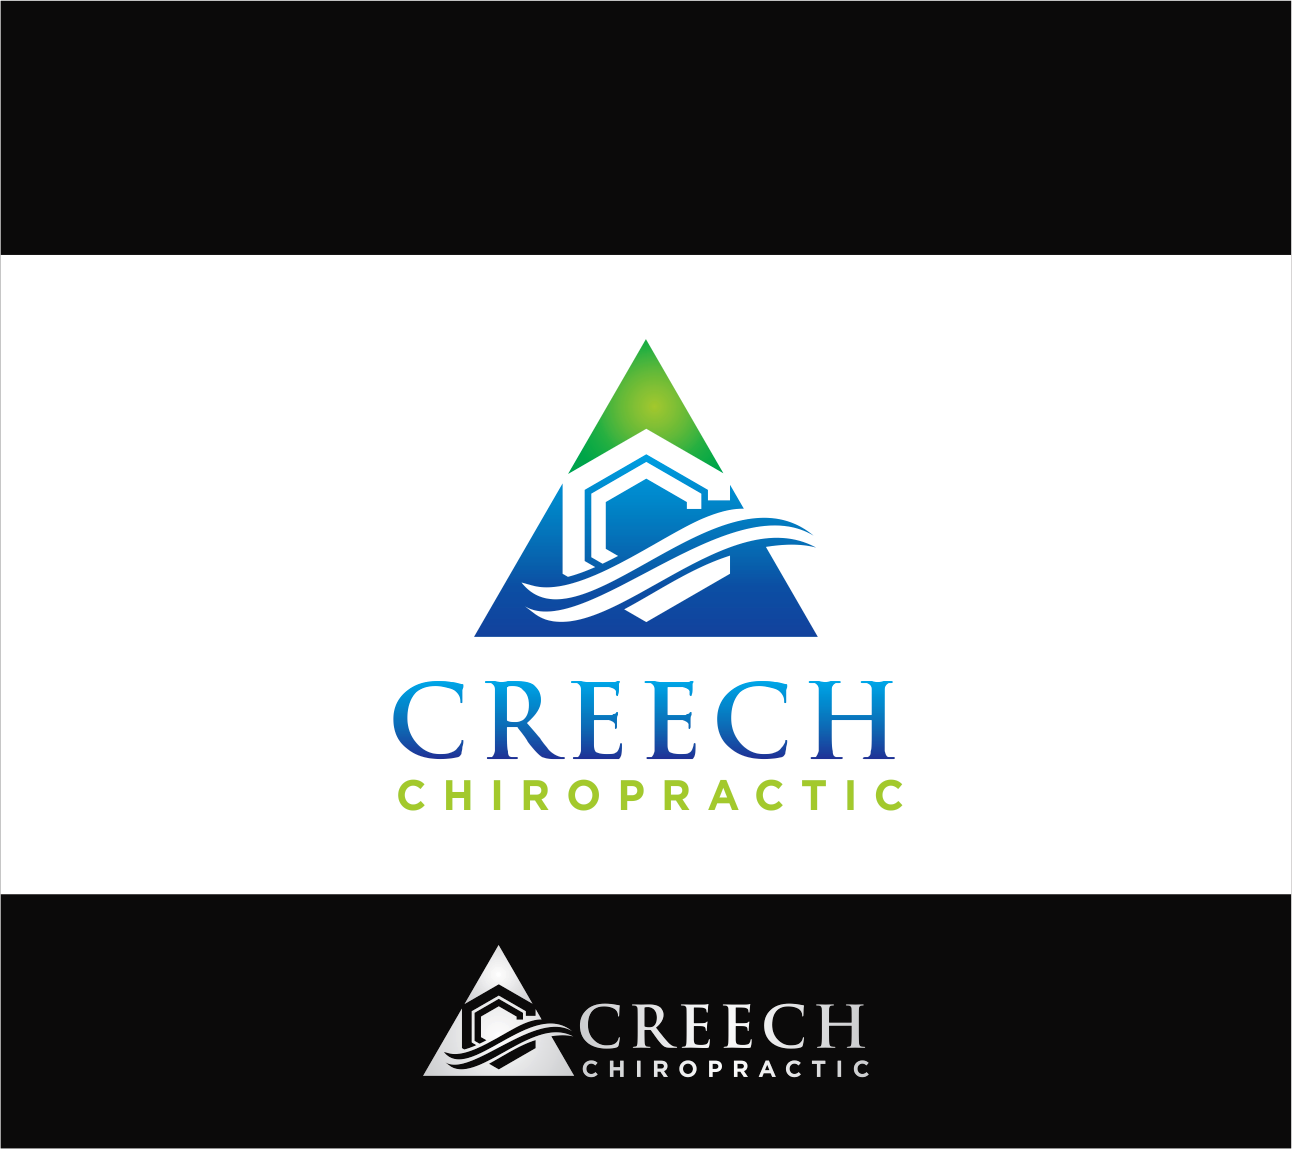 Logo Design by Armada Jamaluddin - Entry No. 97 in the Logo Design Contest Imaginative Logo Design for Creech Chiropractic.